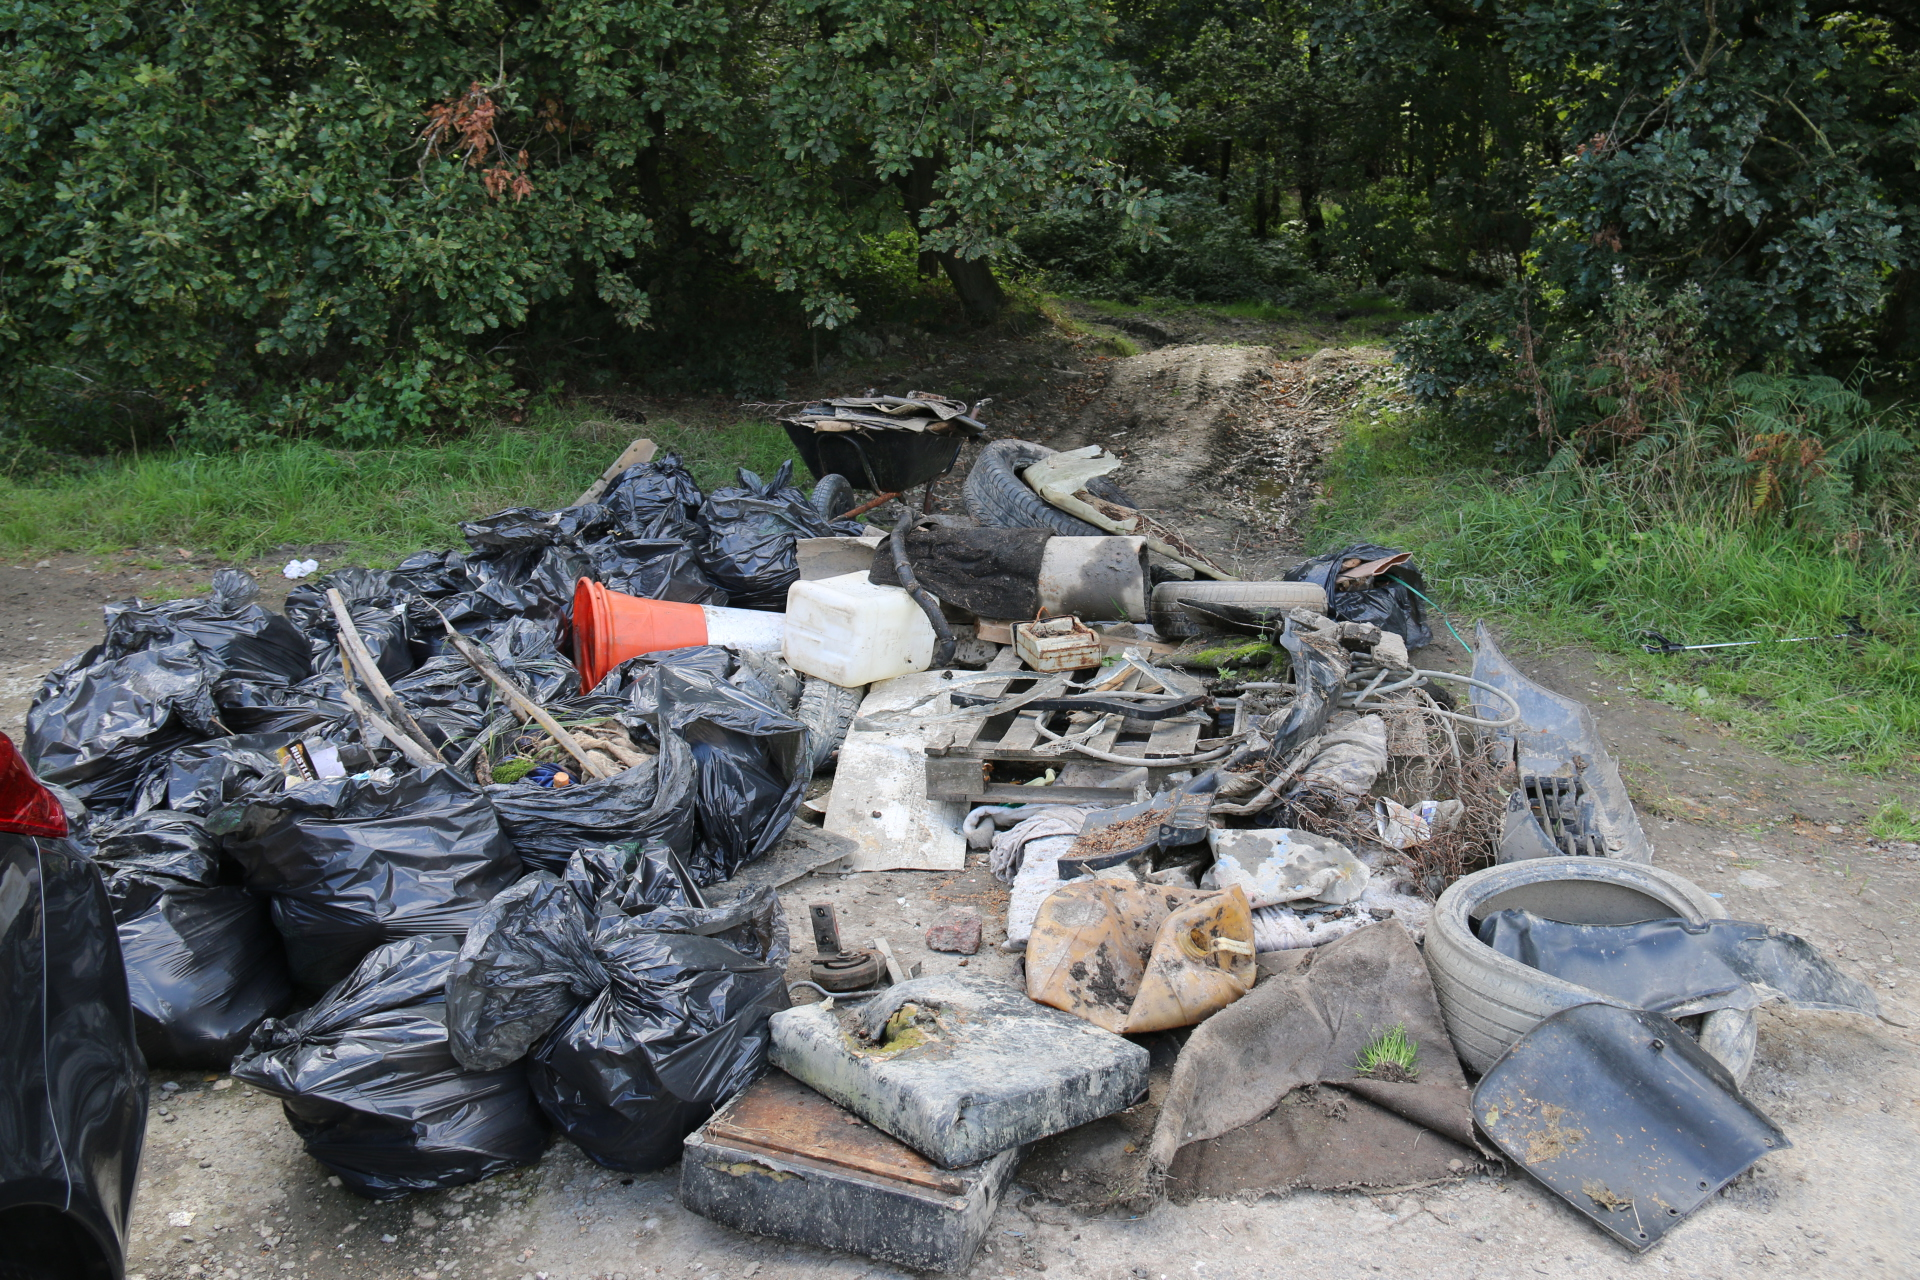 Why flytip? A response to Toby Foster.